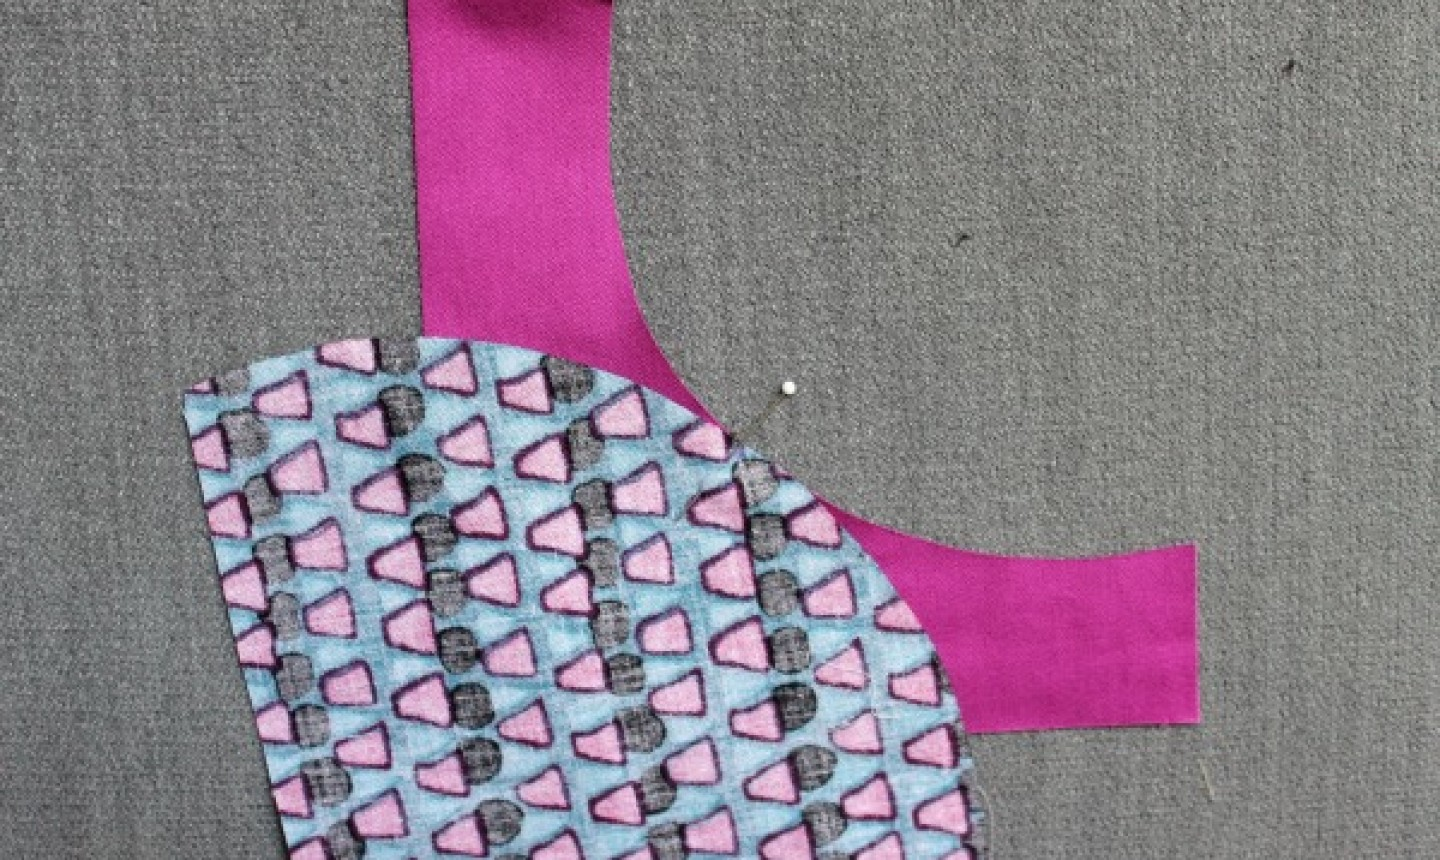 curved fabric pieces